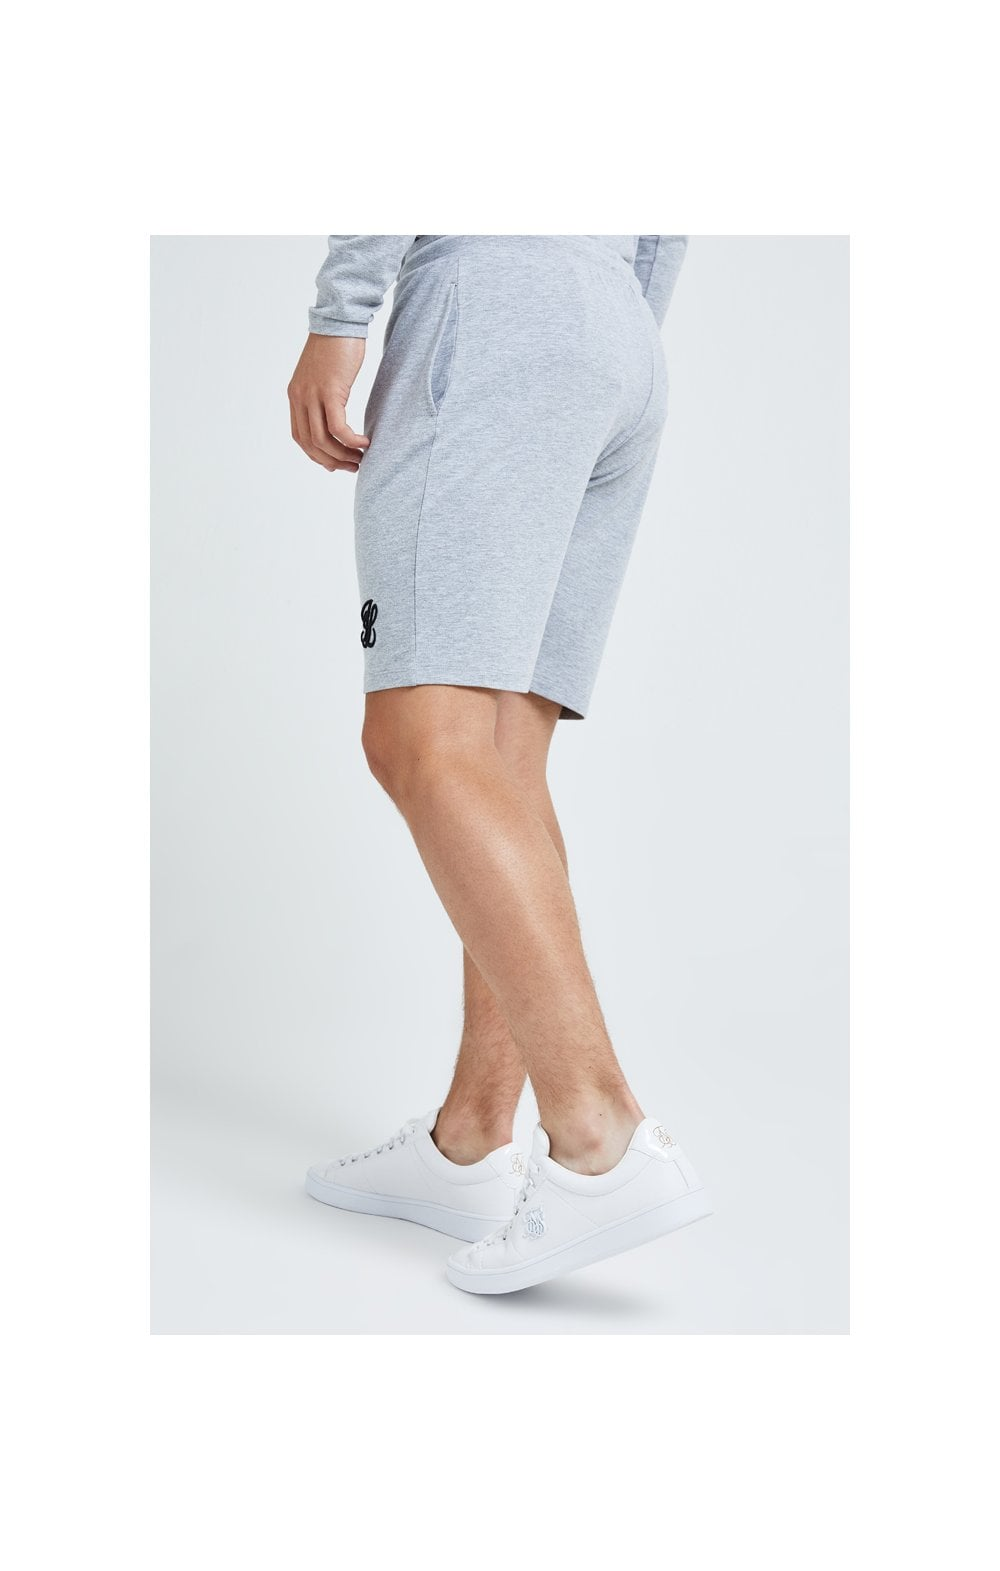 Load image into Gallery viewer, Illusive London Core Jersey Shorts - Grey Marl (3)